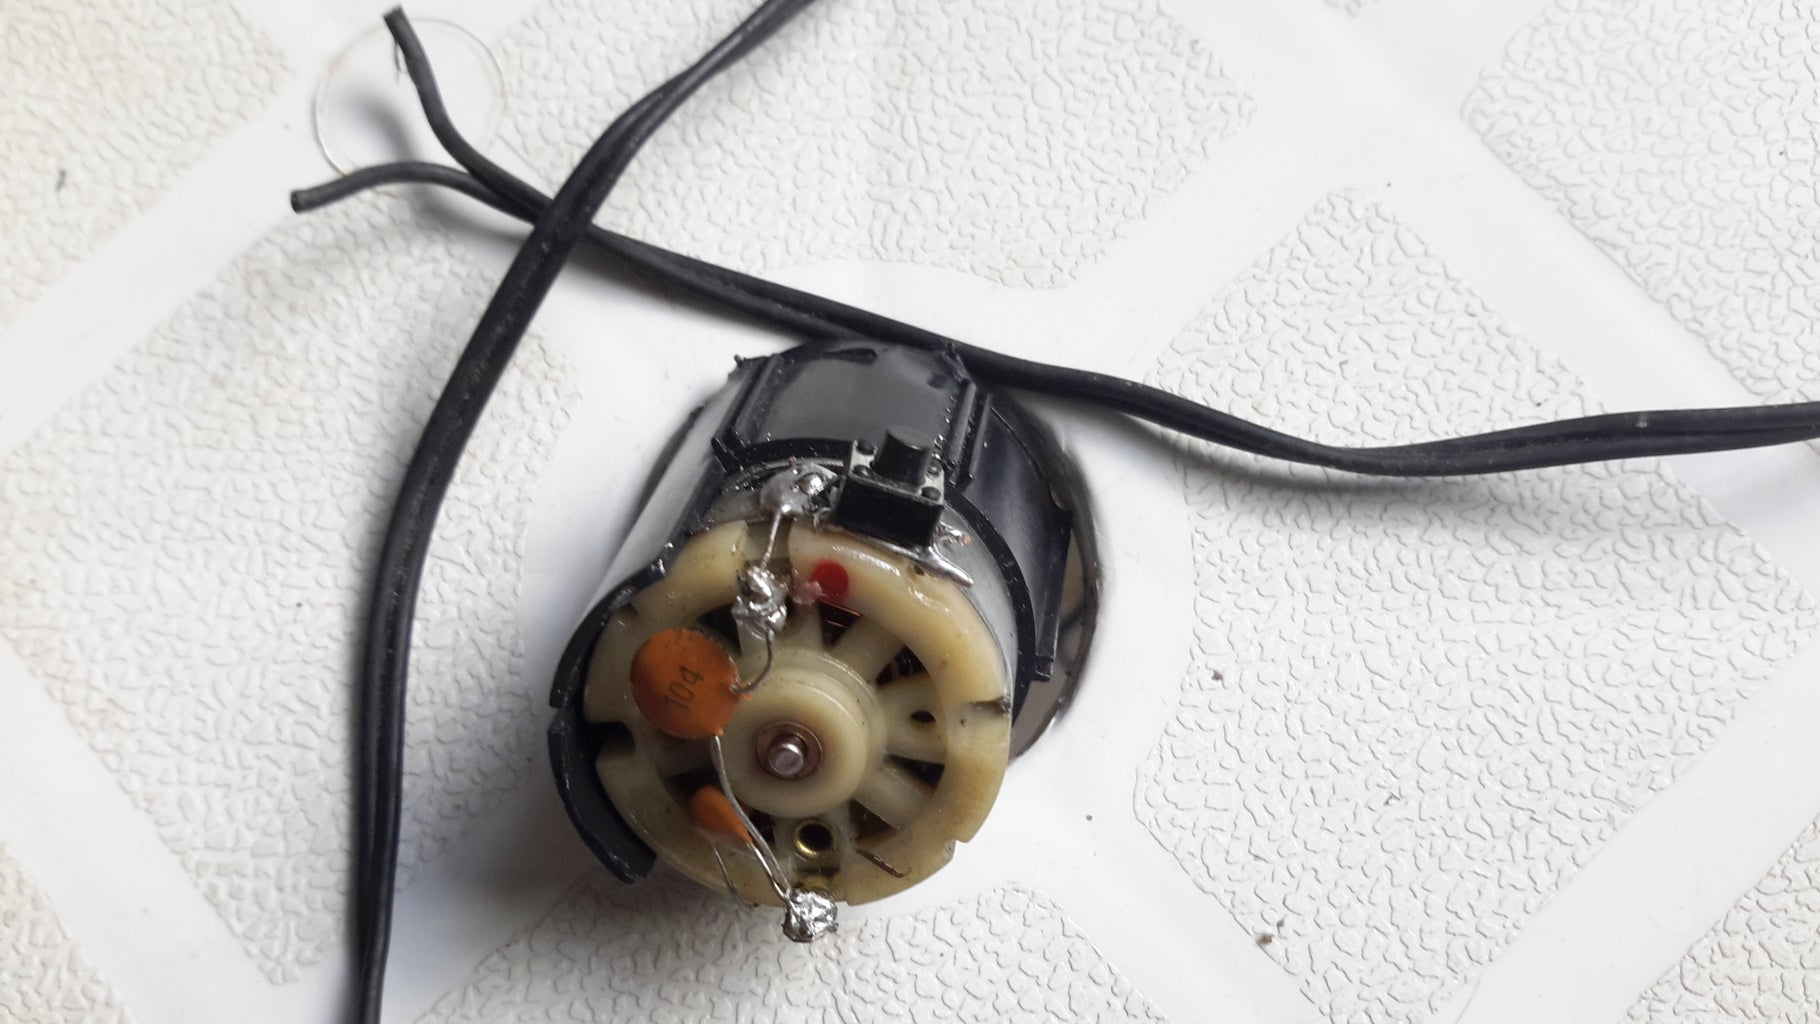 Power Cable and Push-button